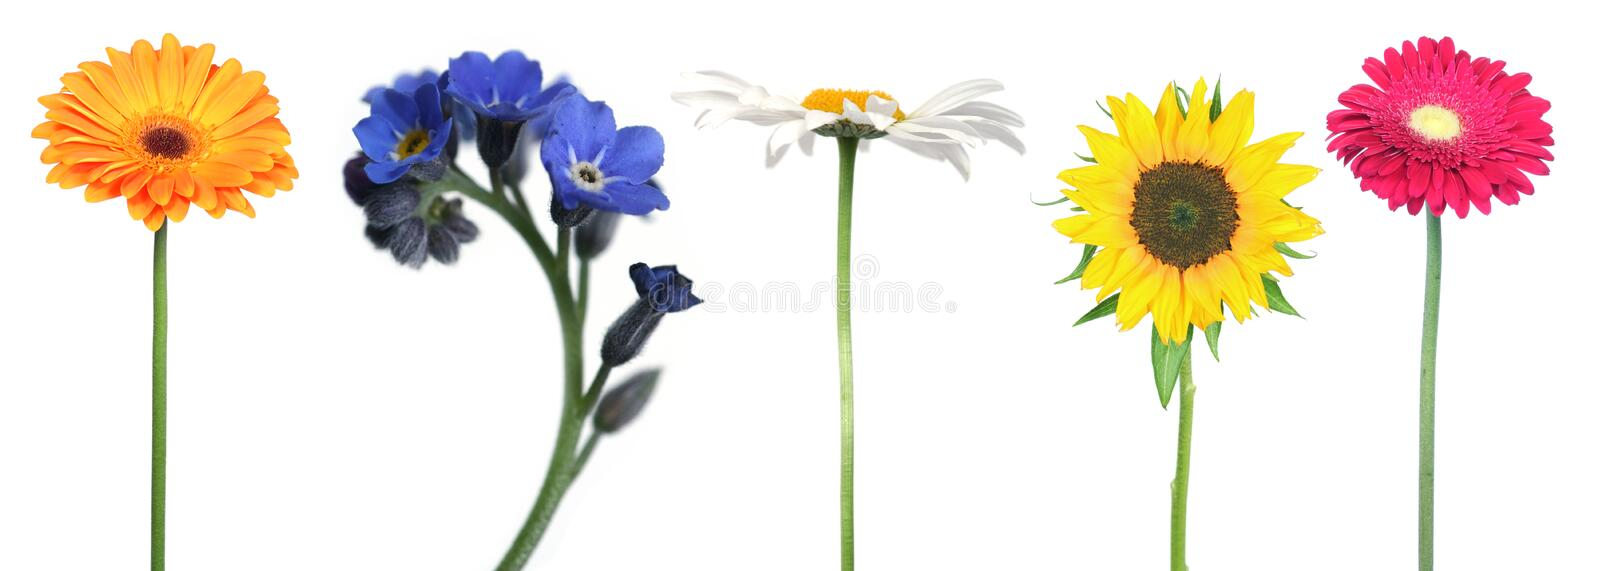 Download Mix of flowers stock image. Image of grow, detail, isolation - 11456141